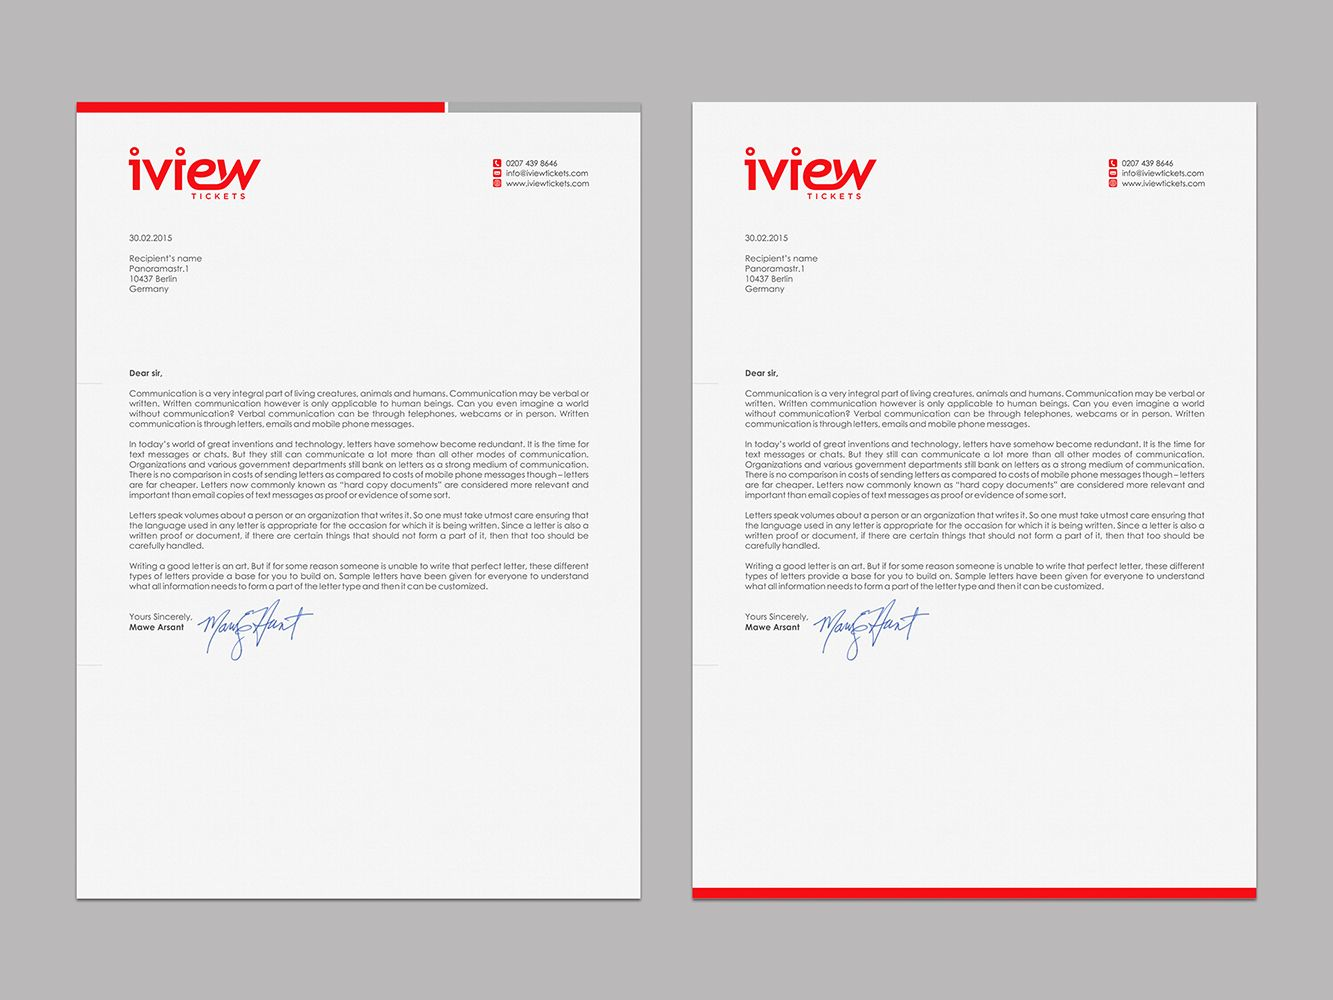 Letterhead Design By Logodentity For Letter Head Use On Daily Correspondence With Other Companies